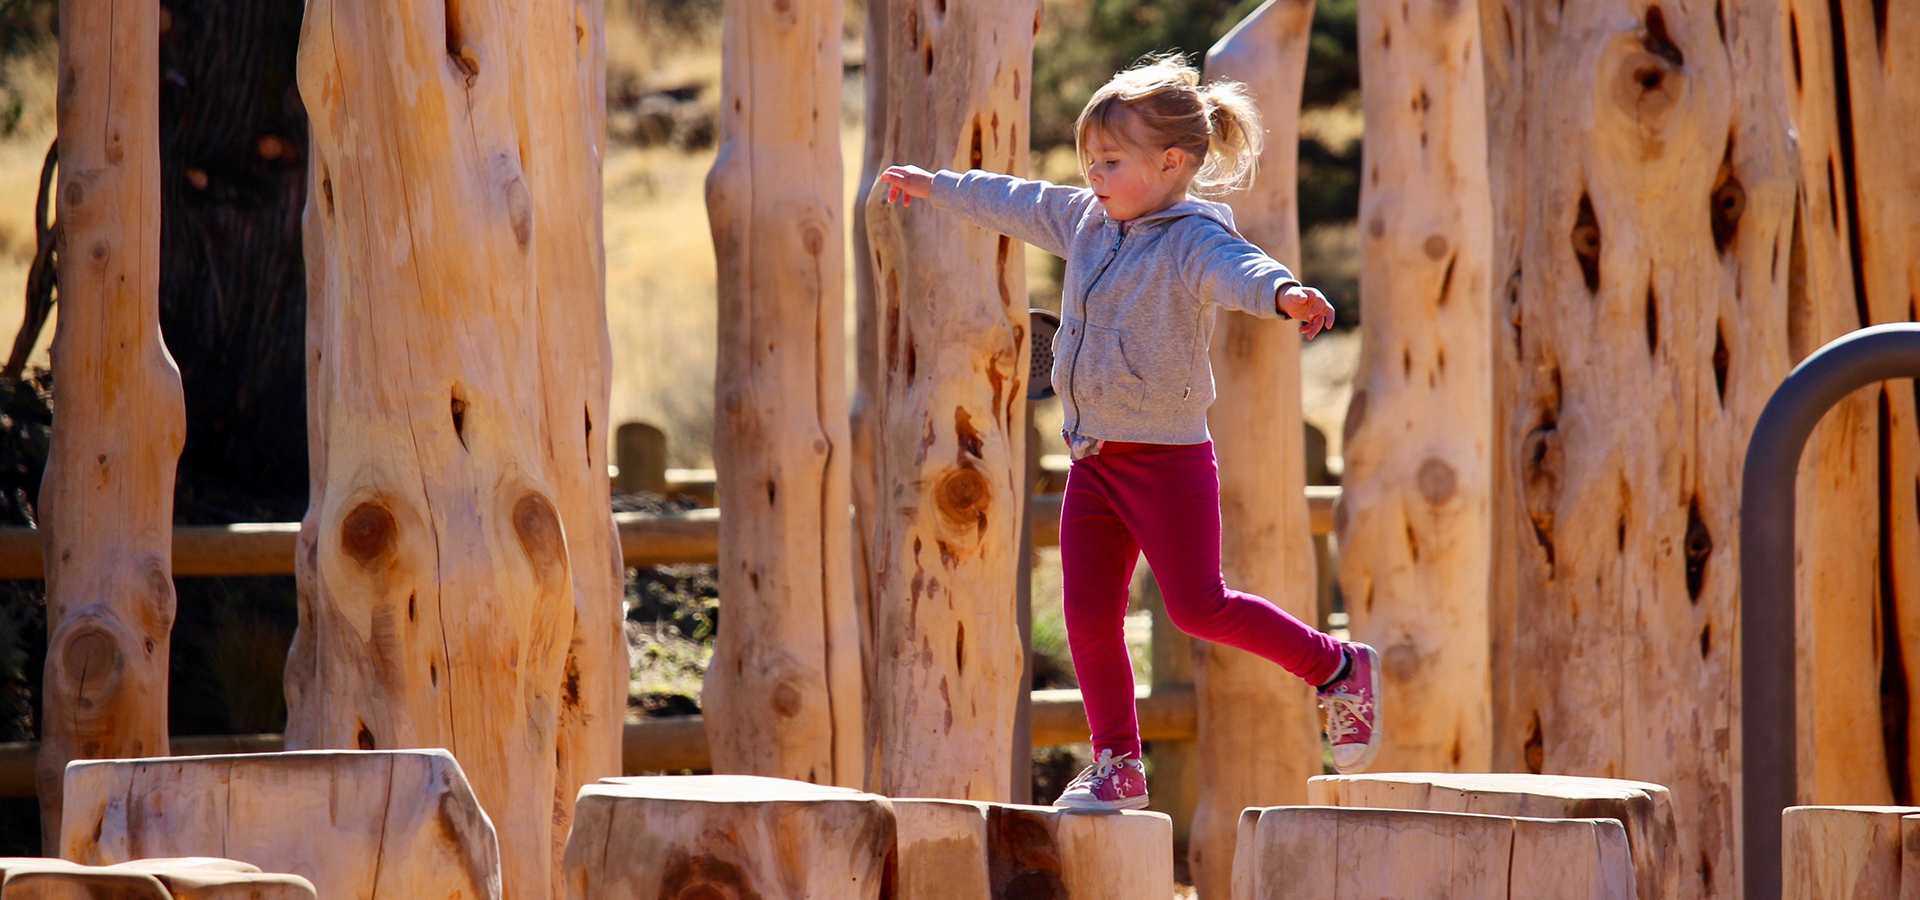 Rockridge-Park-Log-Forrest-Natural-Play-Area